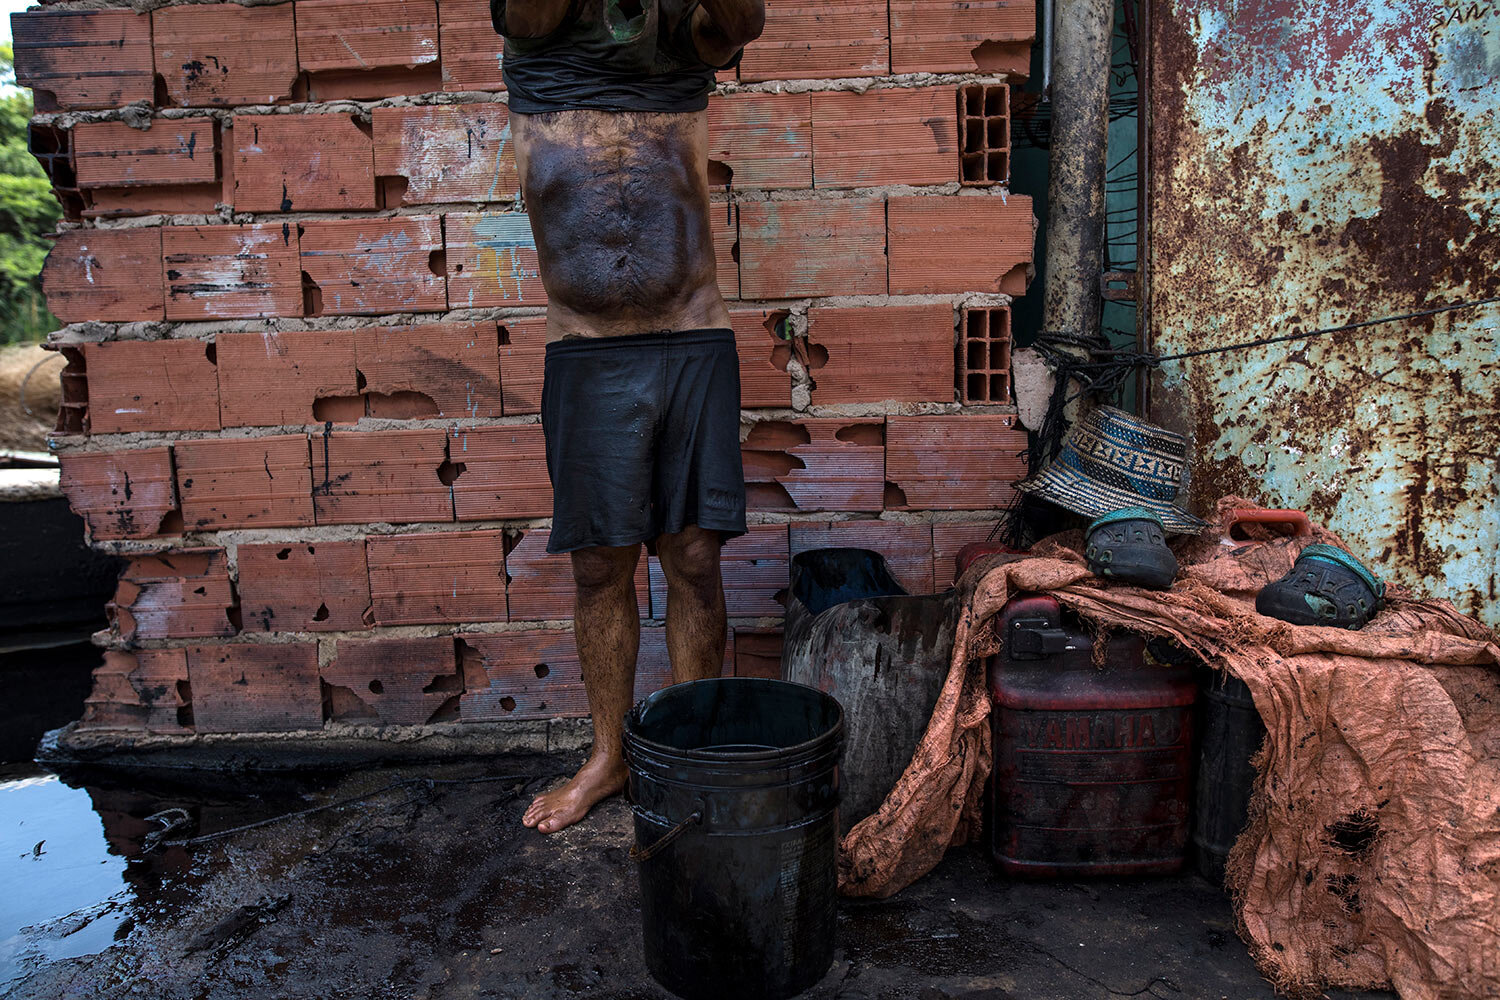 Fisherman Manuel Nune's stomach is covered in oil, as he cleans up after a day of crab fishing on Lake Maracaibo in Cabimas, Venezuela, July 4, 2019. Fishermen wash the oil from their bodies with raw gasoline. They say the prickly rash in their skin is the price of survival. (AP Photo/Rodrigo Abd)